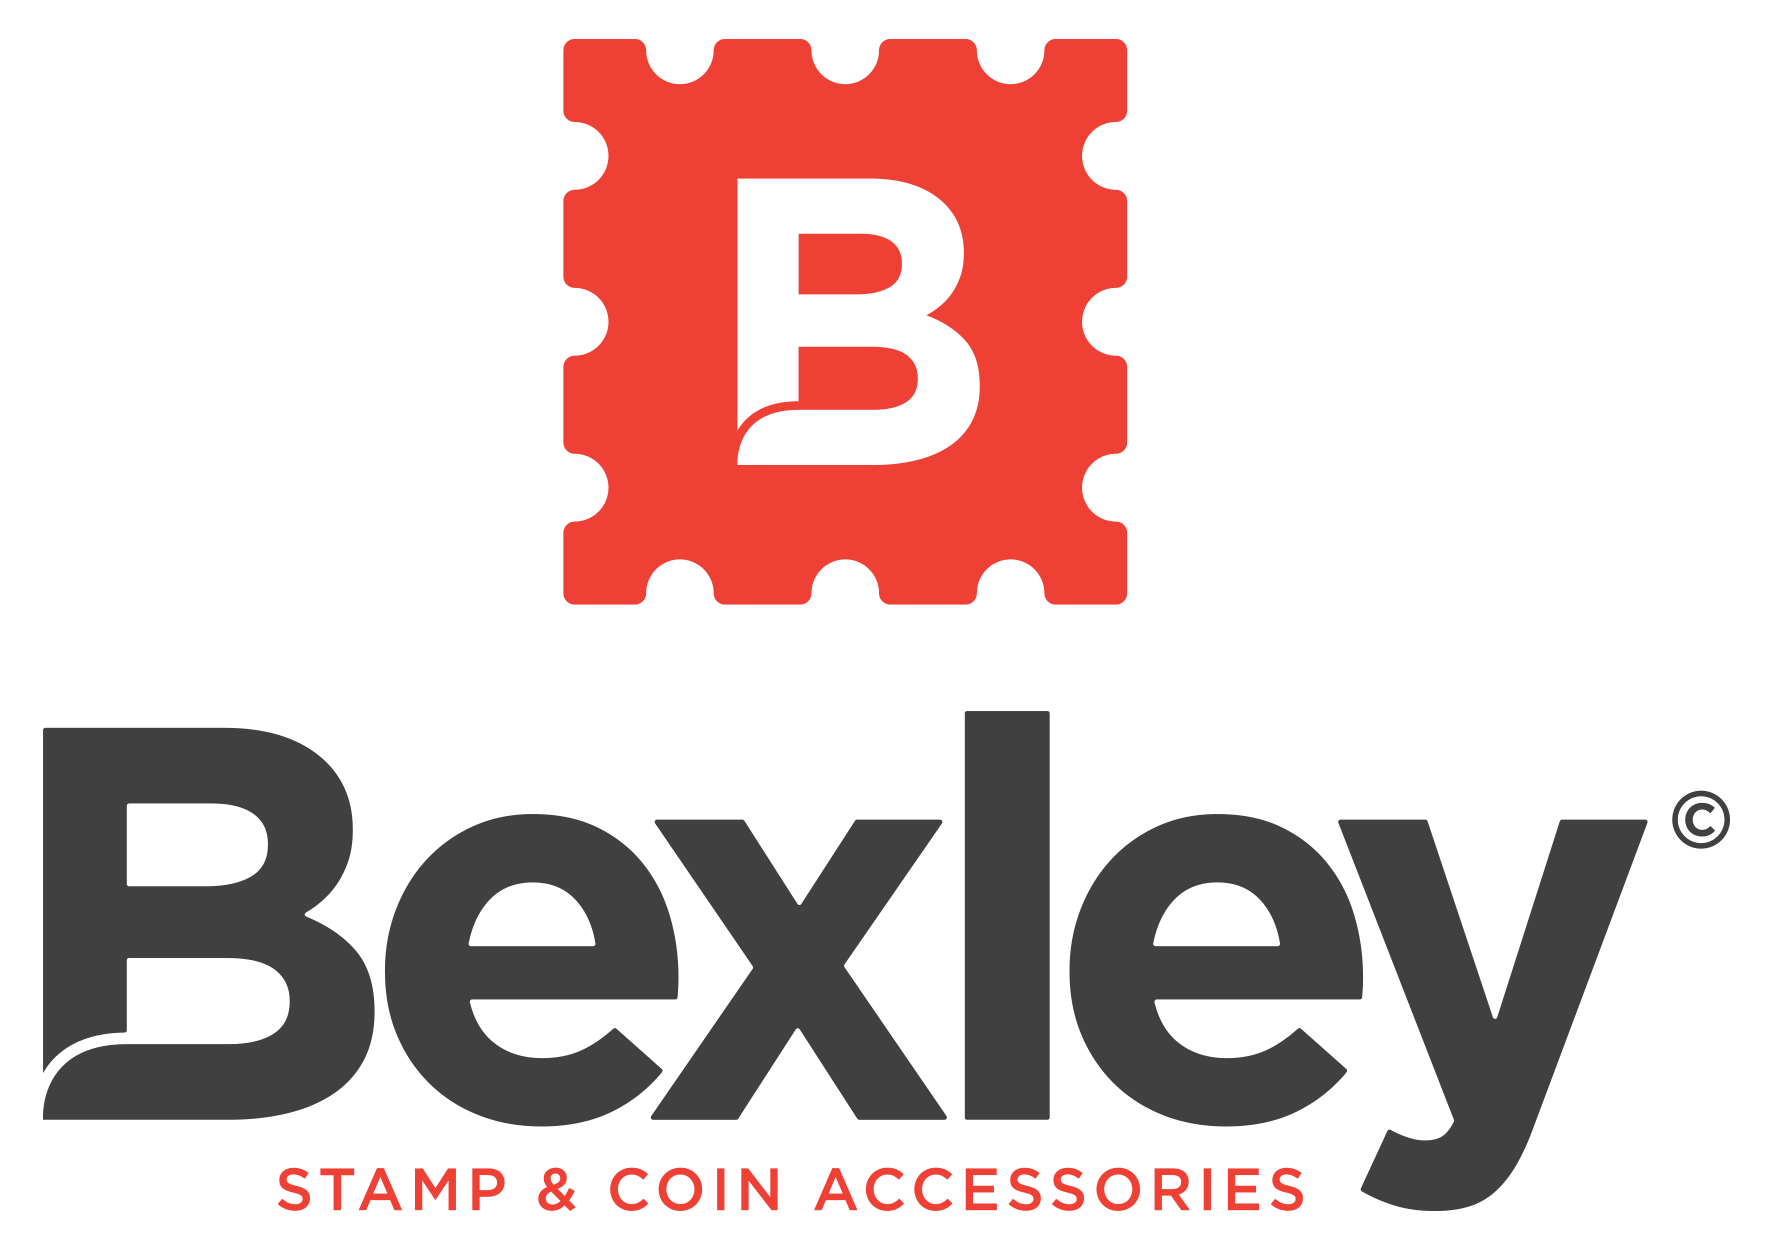 Bexley Stamp and Coin Accessories